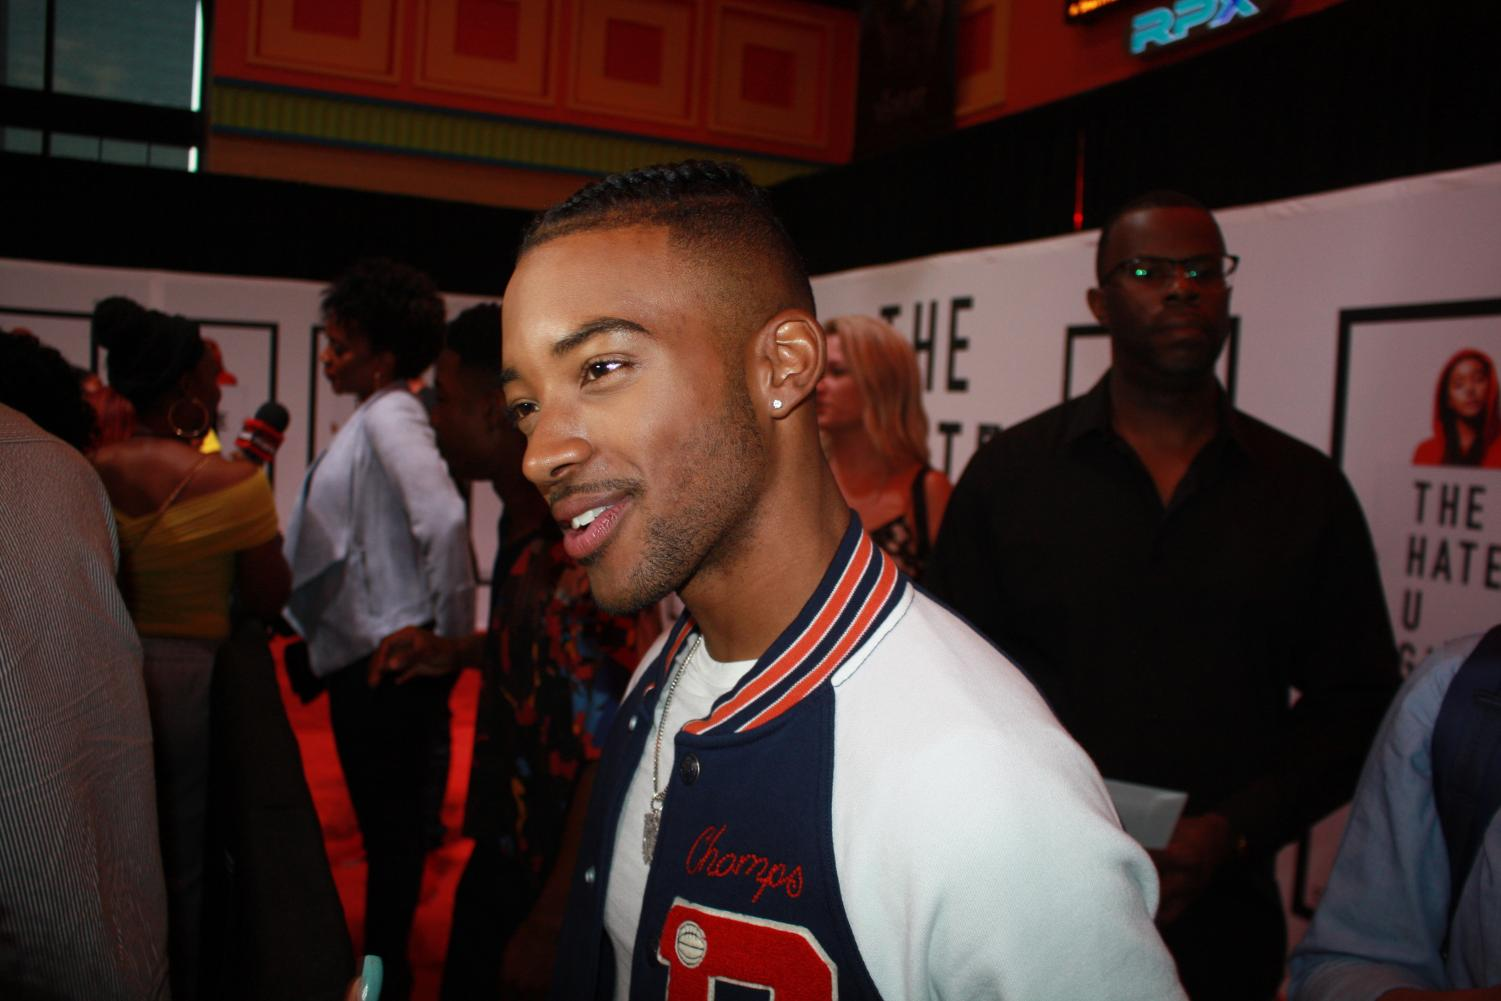 At the premiere of The Hate U Give, Algee Smith, who plays Khalil, answers questions about  eliminating microaggressions.